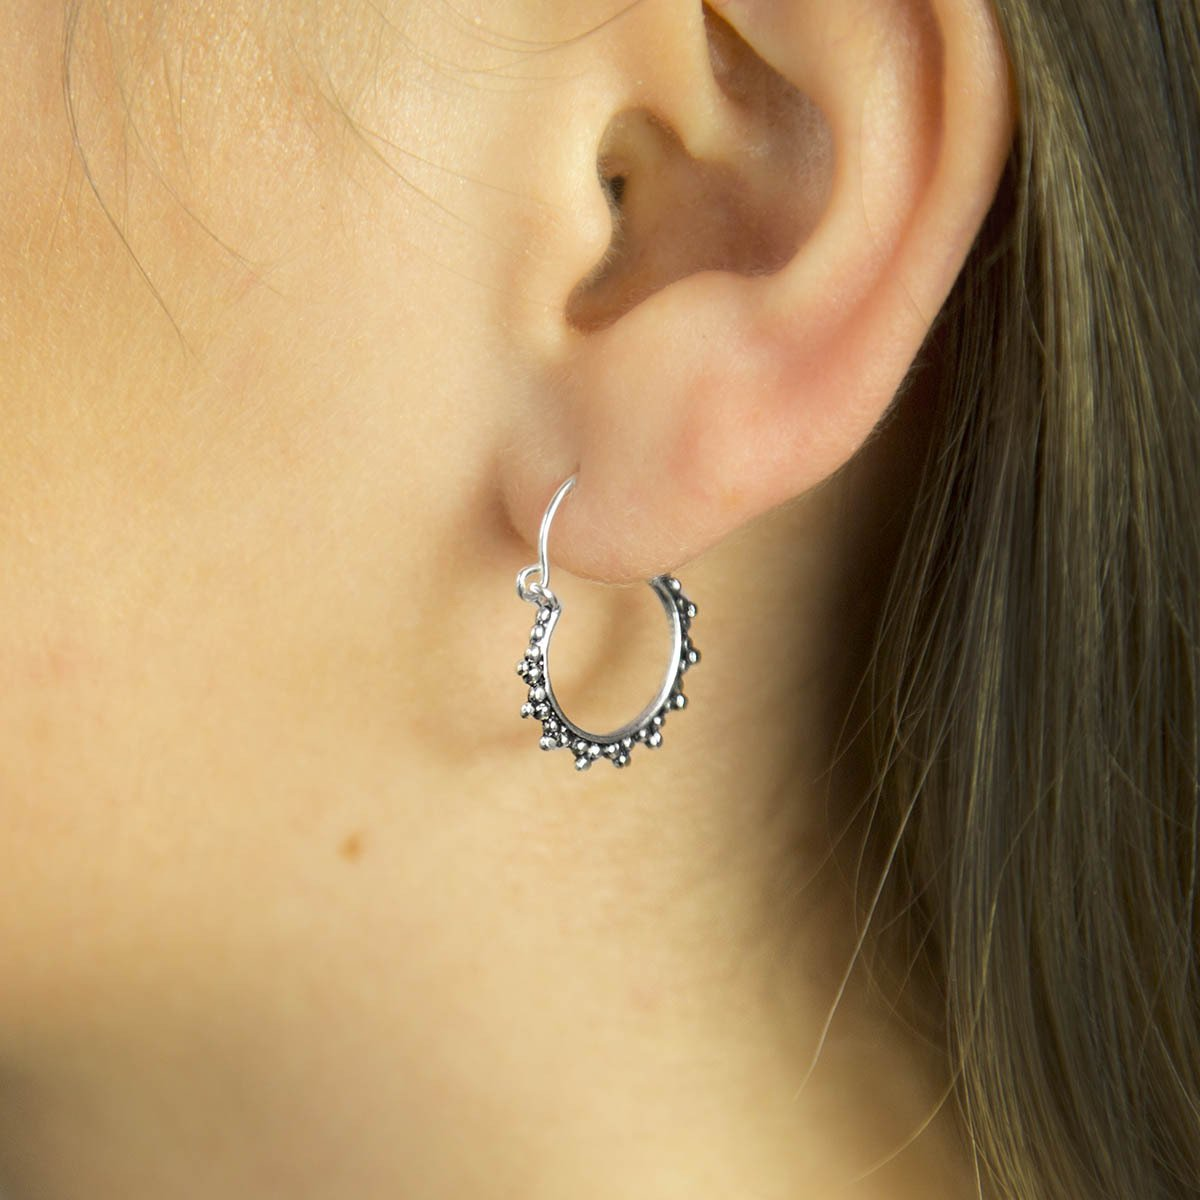 Silver and Oxidised Hoops with circular ball detail pattern on Brunette Model